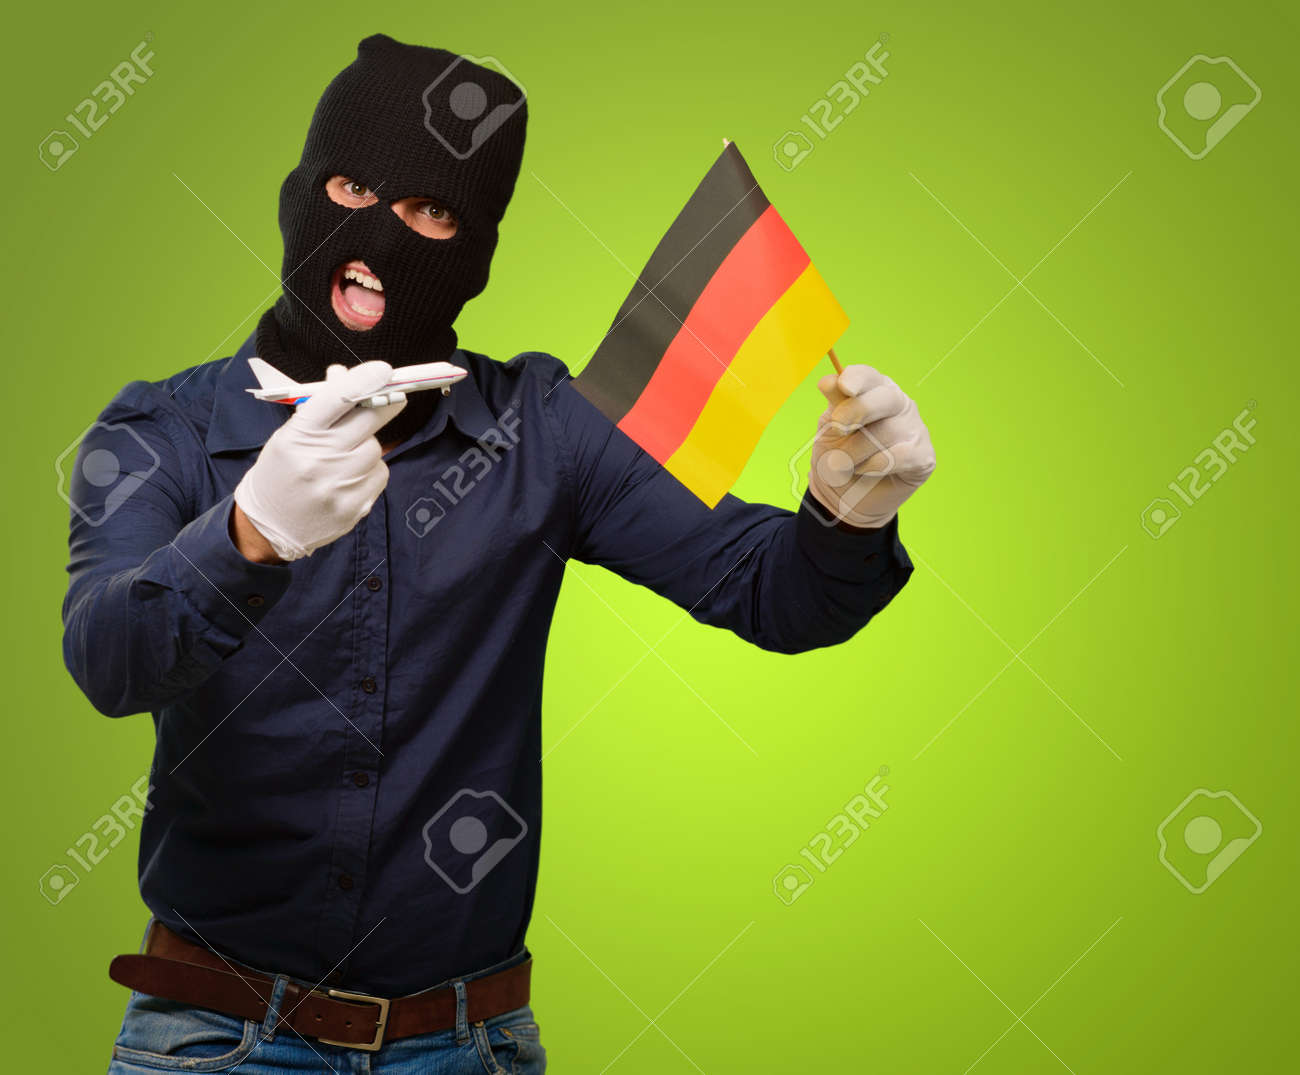 Man wearing a robber mask and holding airplane miniature and flag on green background Stock Photo - 15187204